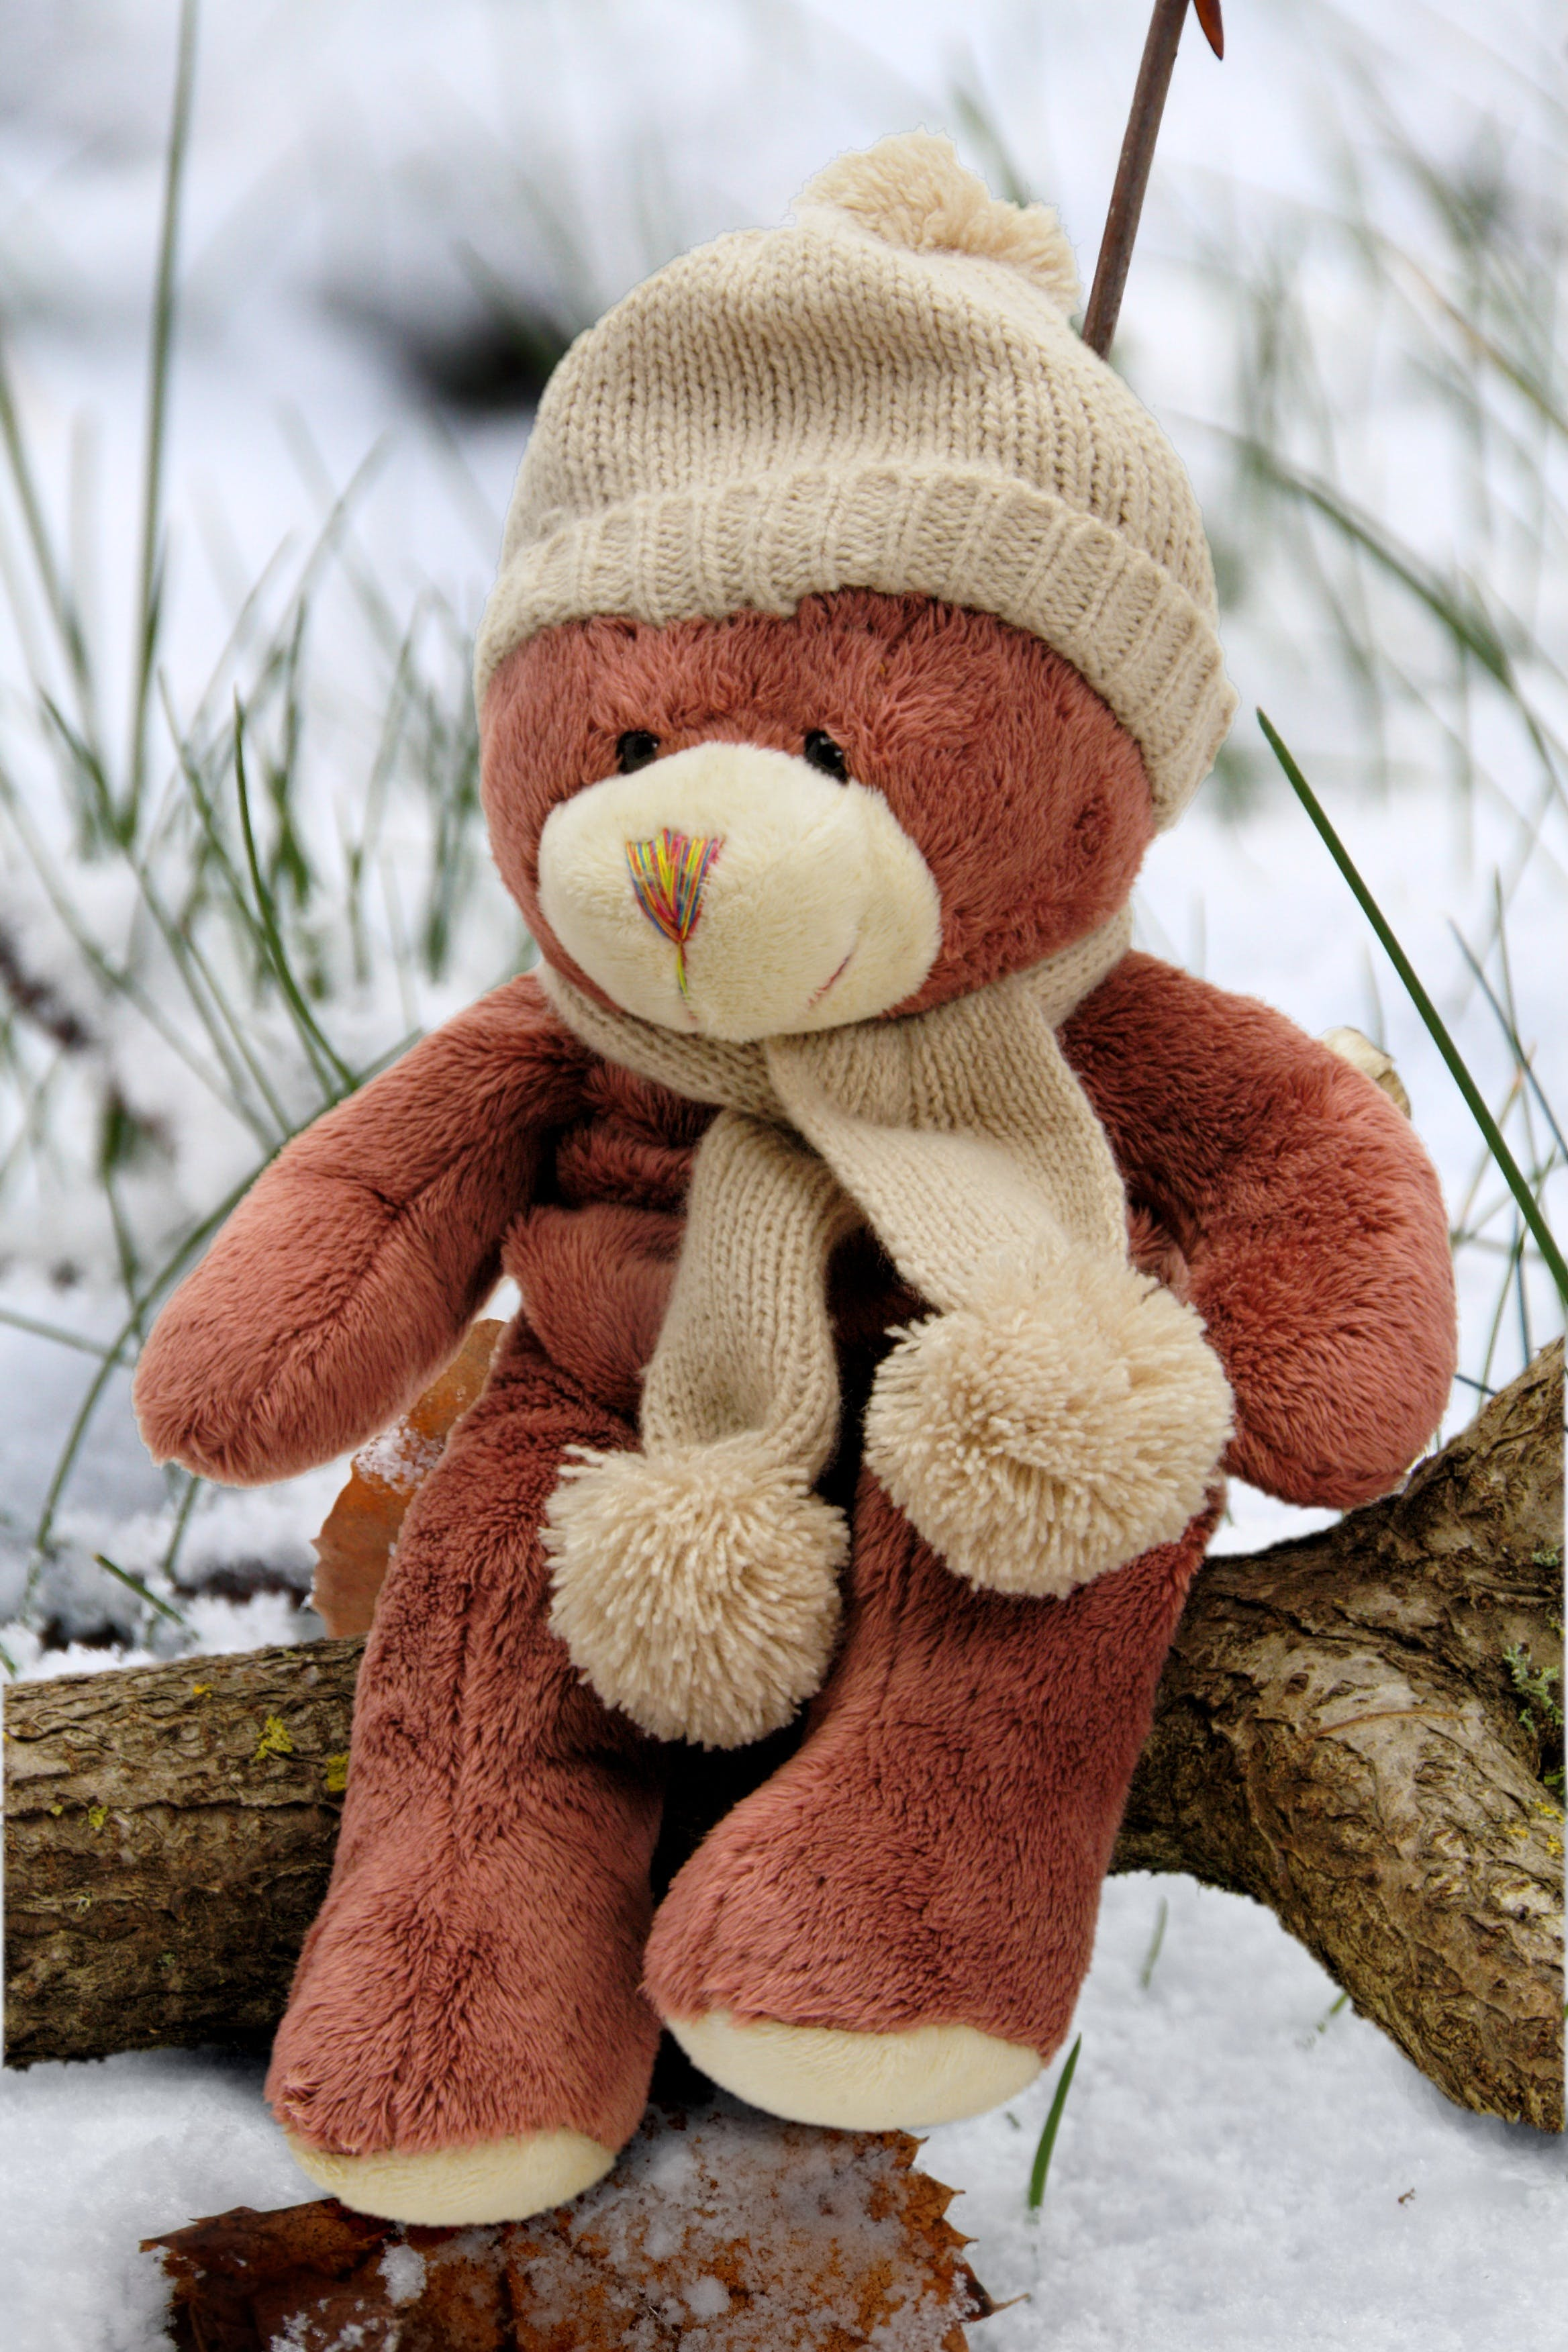 Beige and Brown Bear Plush Toy on Brown Branch during Day Time